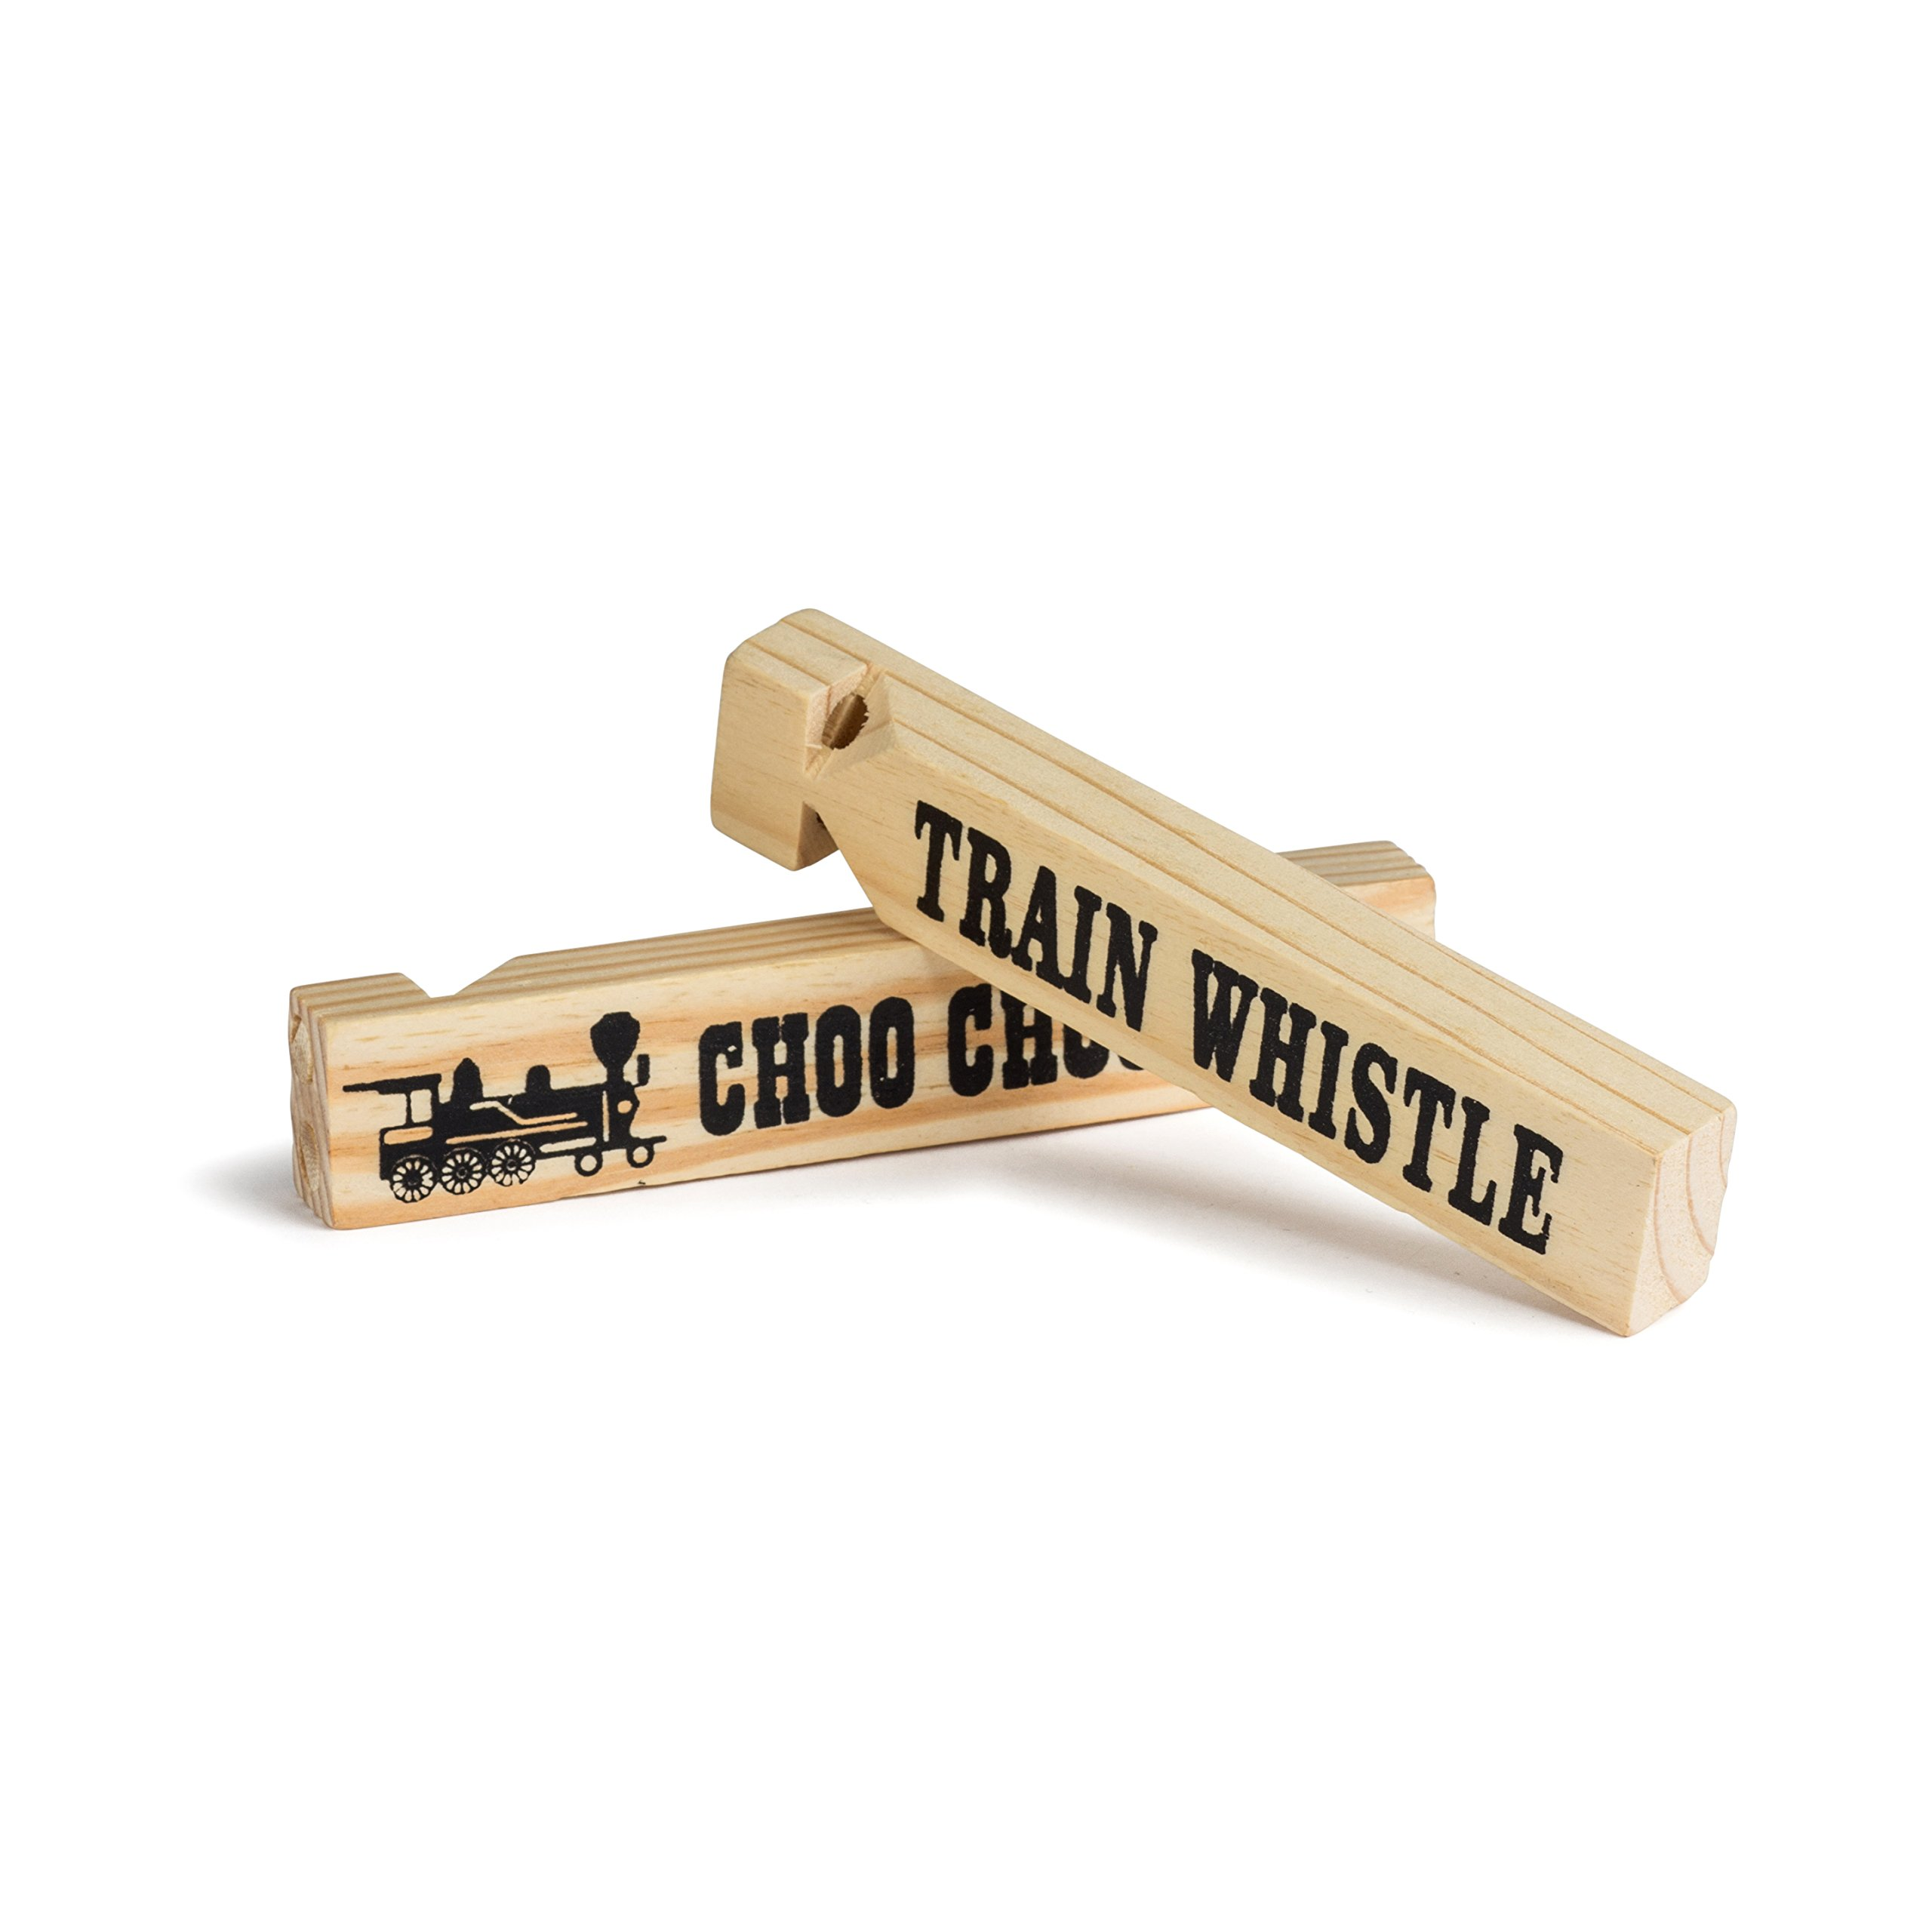 Neliblu 1 Dz 5.75'' Wooden Train Whistles, Train Whistle for kids, Train Whistle Party Favors, Thomas The Train Themed Party Favors, Bulk Toys, Party Noisemakers, 12 Train Whistles by